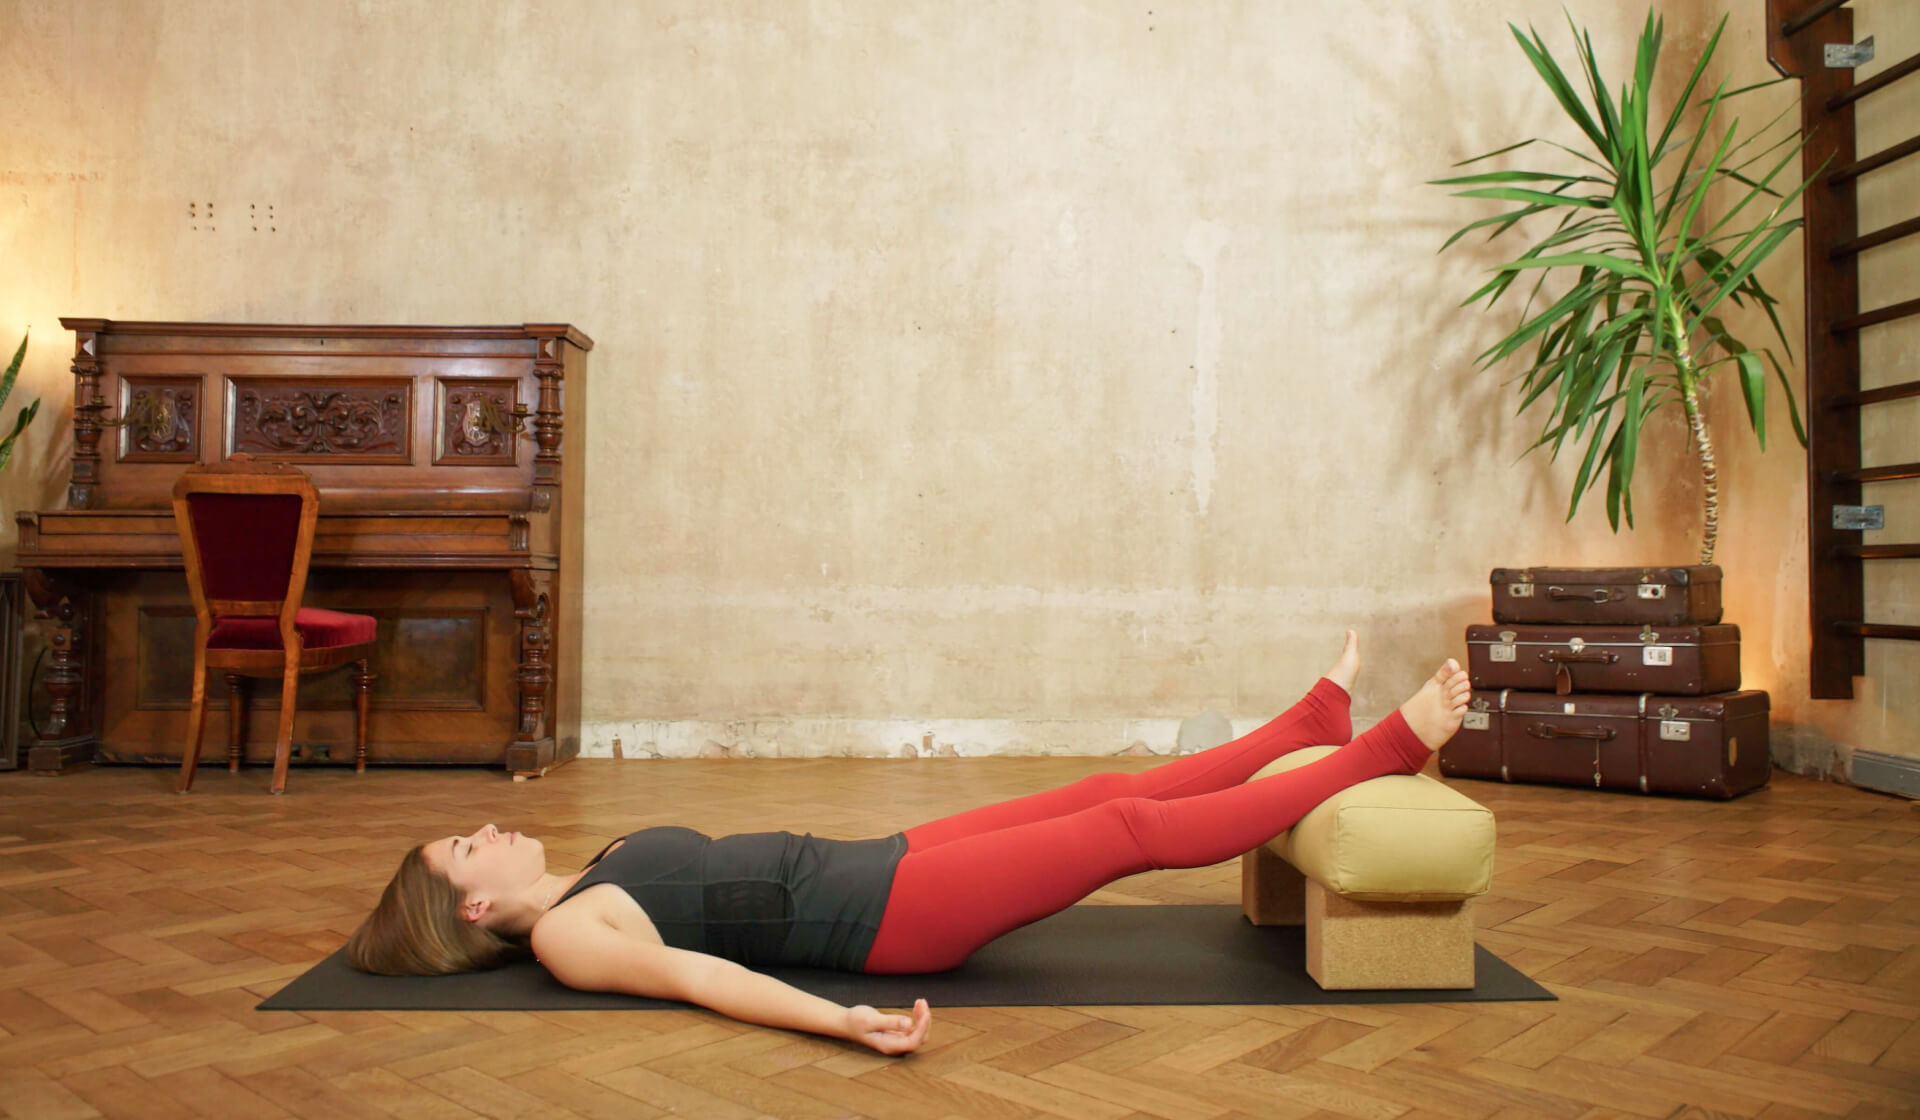 Yoga teacher in black tank top and red yoga pants laying down with her feet on a yoga bolster on a black yoga mat in front of a piano, beige wall, stack of suitcases, and green palm tree